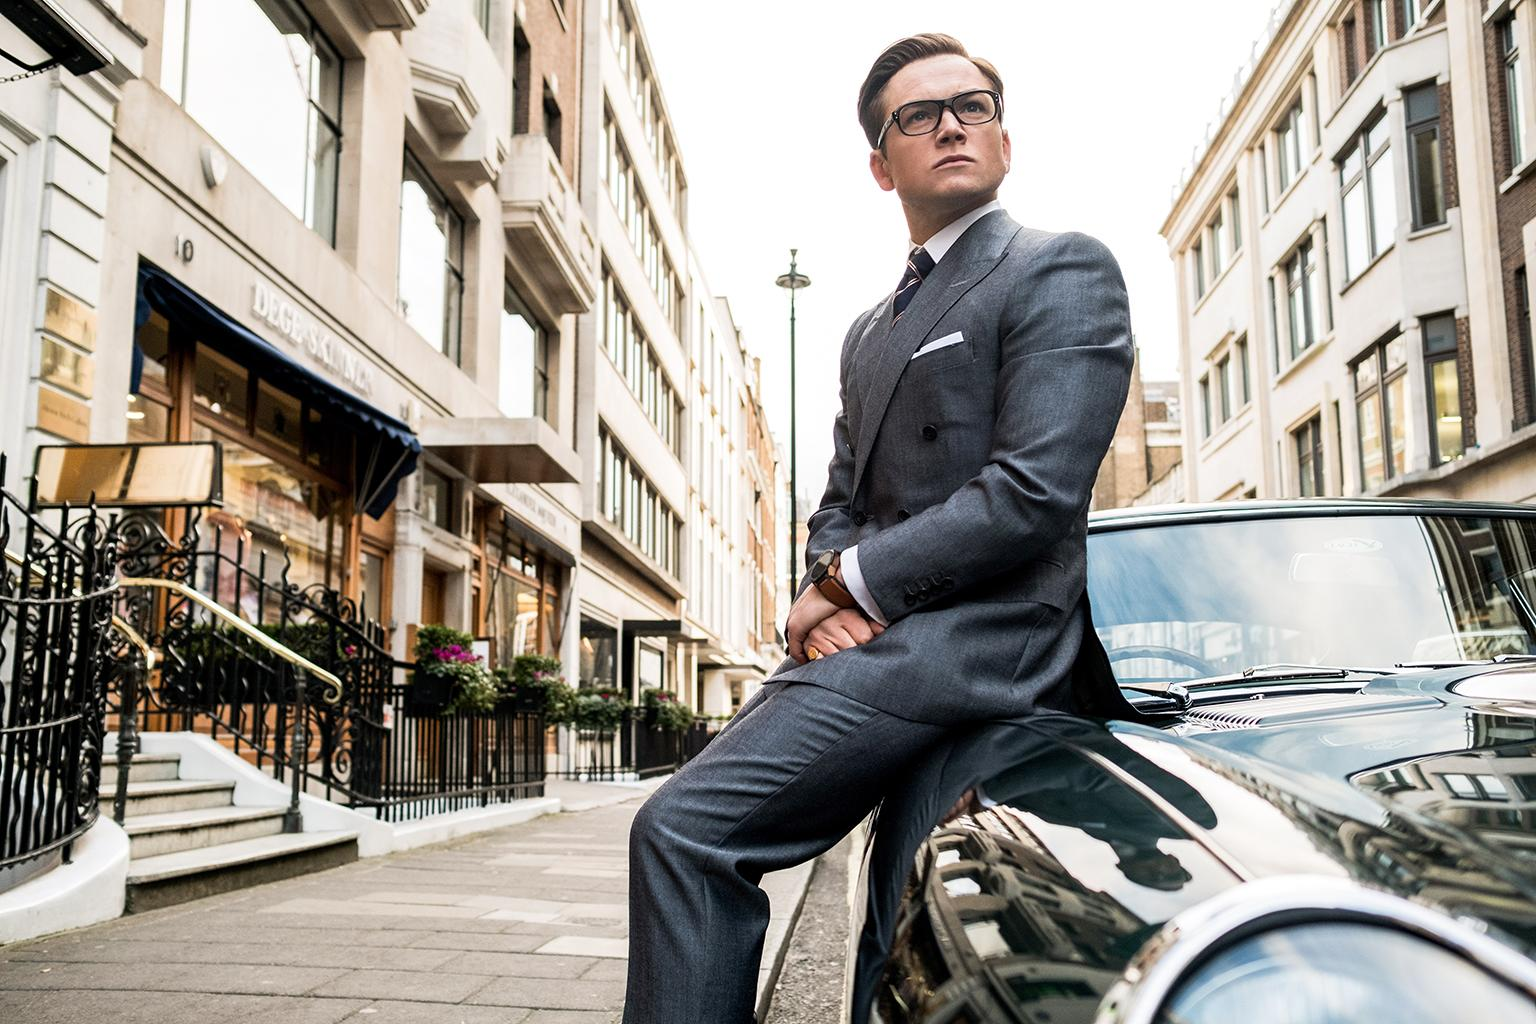 Kingsman 3: Taron Egerton Reveals He Won't Be Back as Eggsy